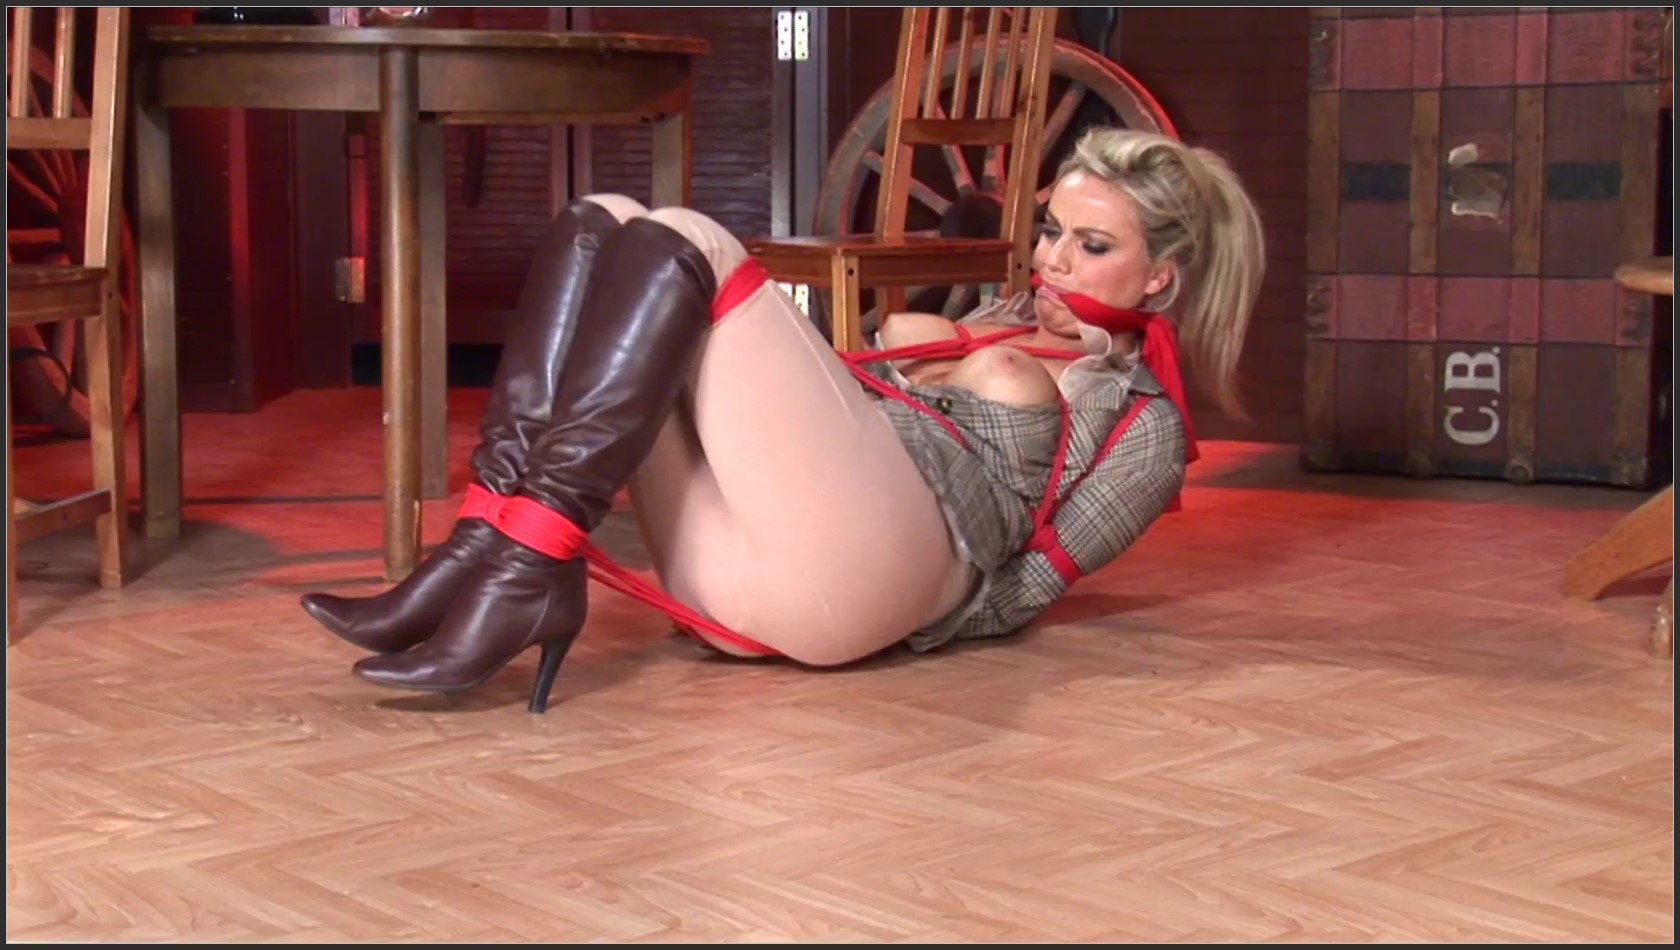 Modelstied - Horse Trader in Trouble! 1 FULL VERSION (Kate)